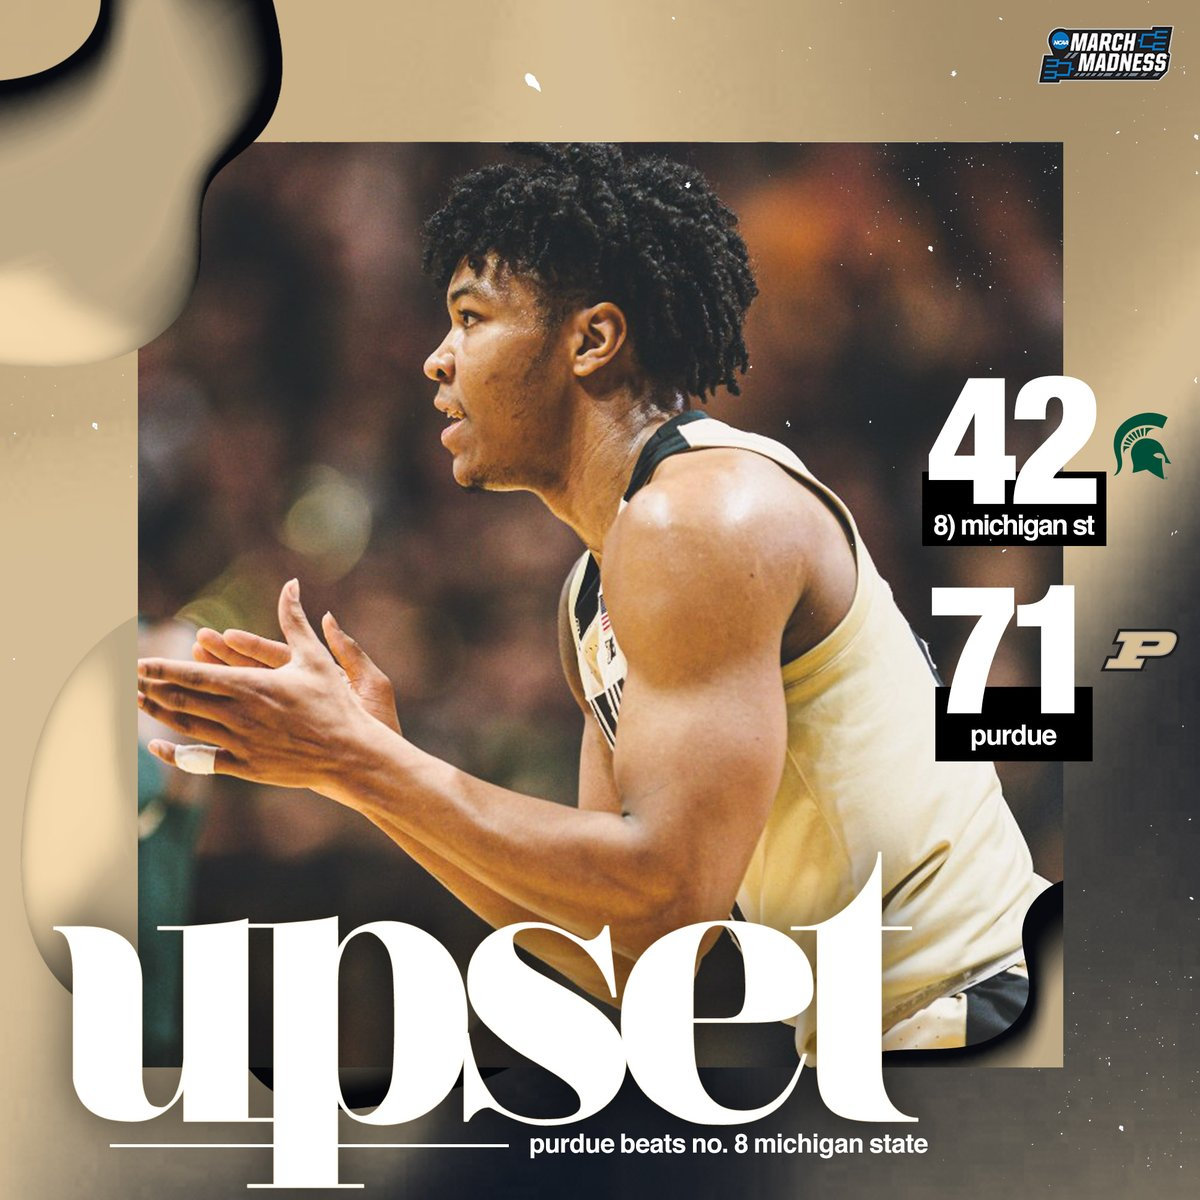 BOILER ALL THE WAY UP!   Purdue defends Mackey & ROLLS No. 8 Michigan State! #BoilerUp 🚂 https://t.co/59m8oba1D8